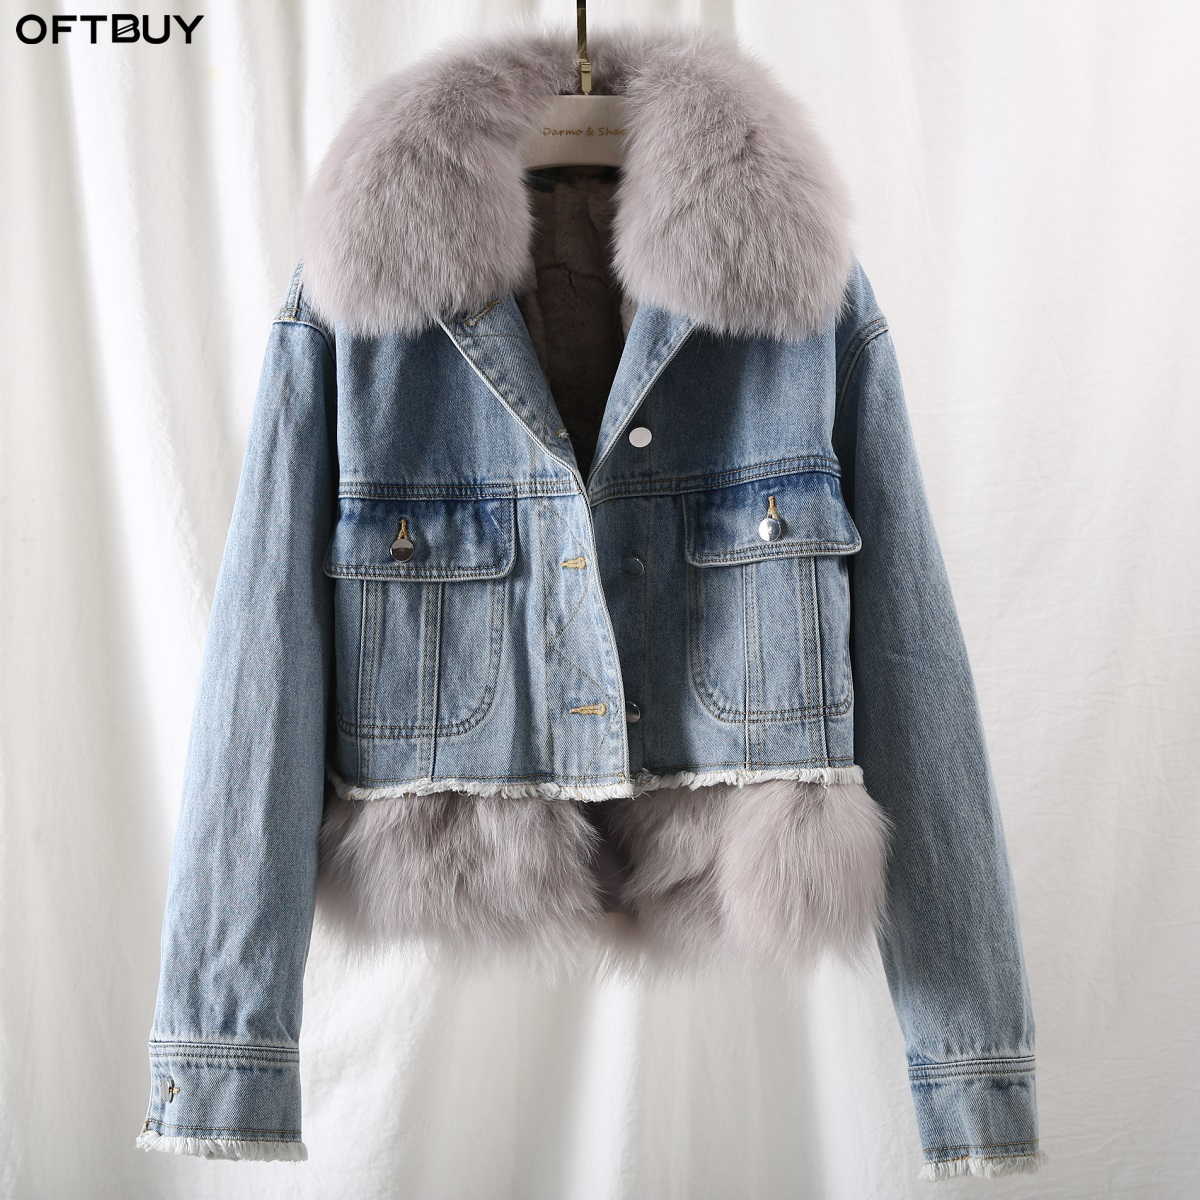 OFTBUY 2019 Winter Jacket Women Casual Real Rabbit Fur Liner Denim Coat Thick Warm Natural Fox Fur Collar Outwear Streetwear New